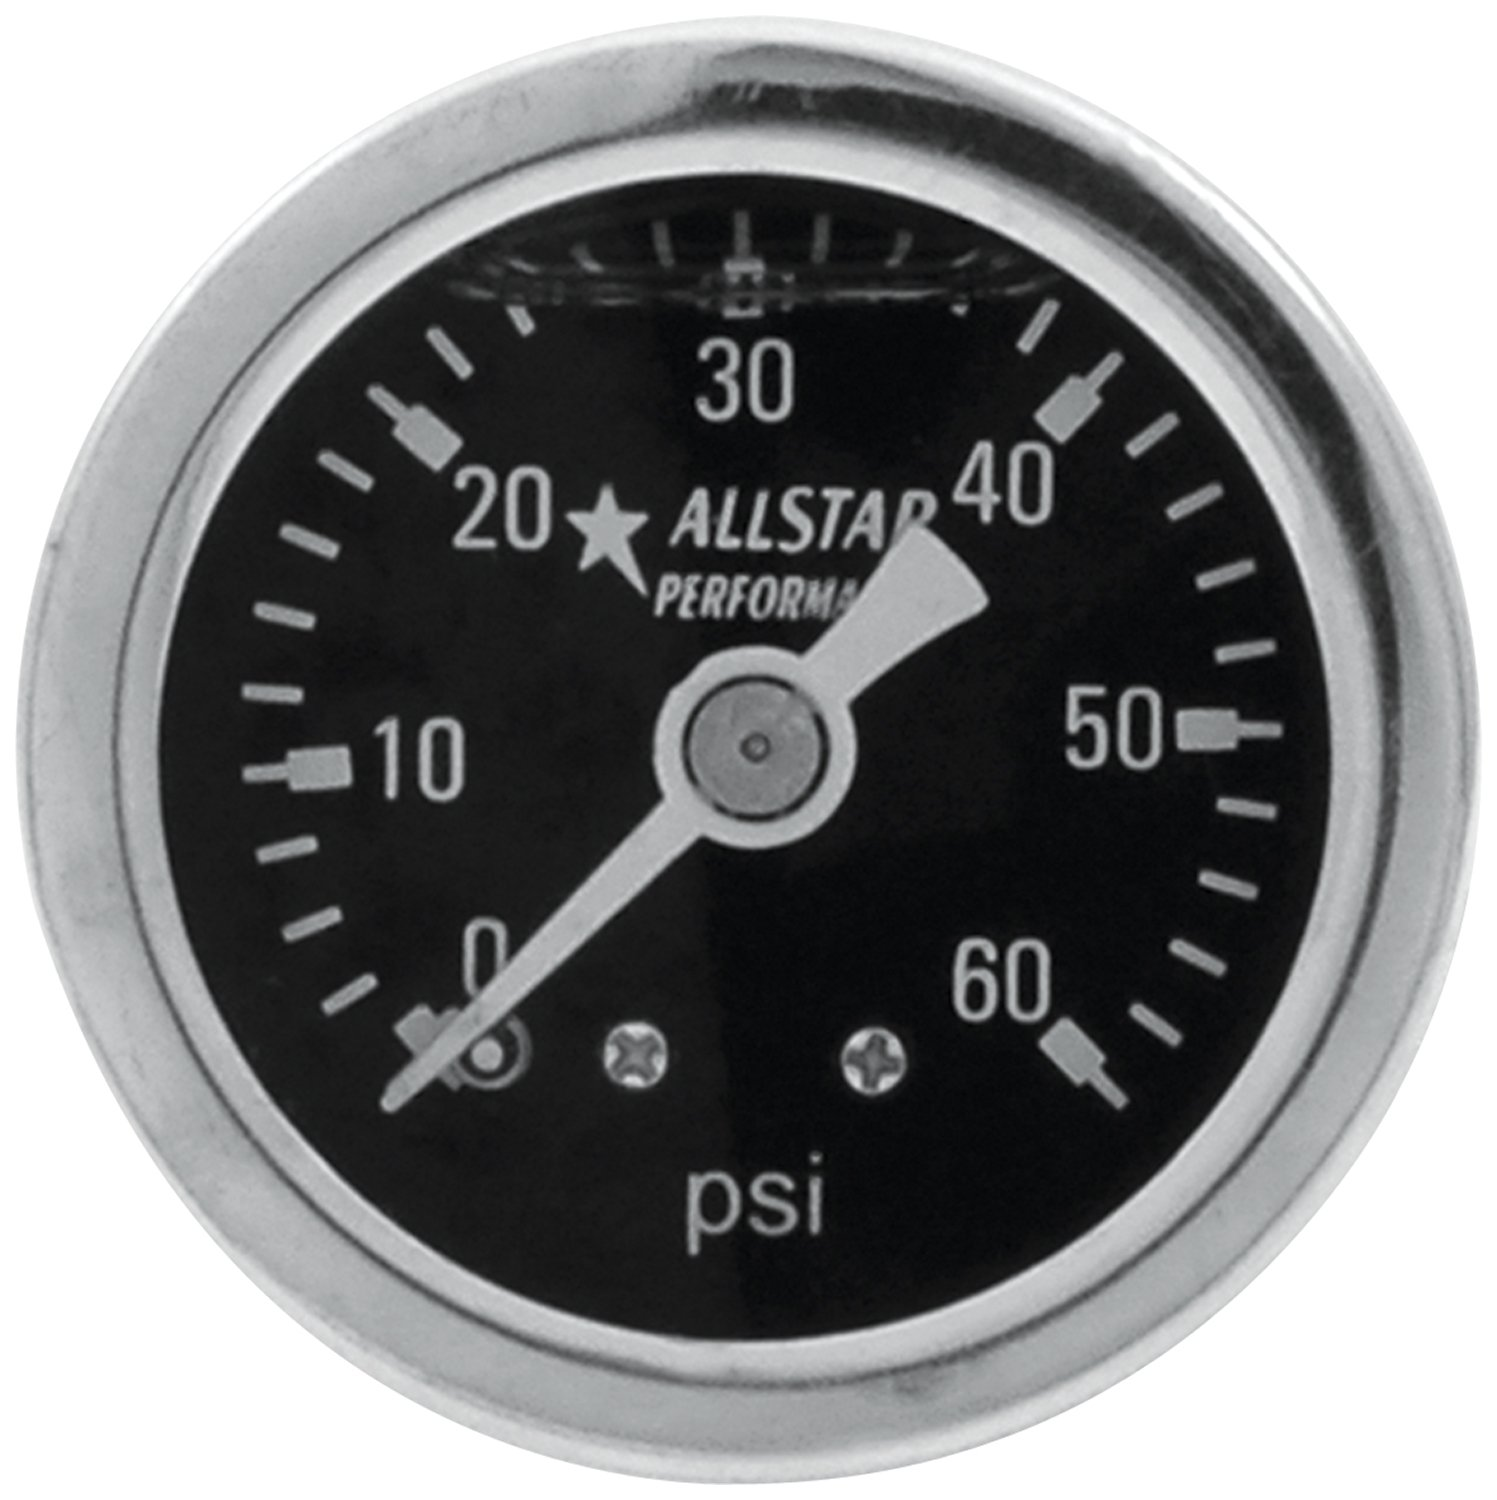 Allstar Performance ALL80200 0-15 PSI 1-1//2 Glycerine Filled Shockproof Pressure Gauge